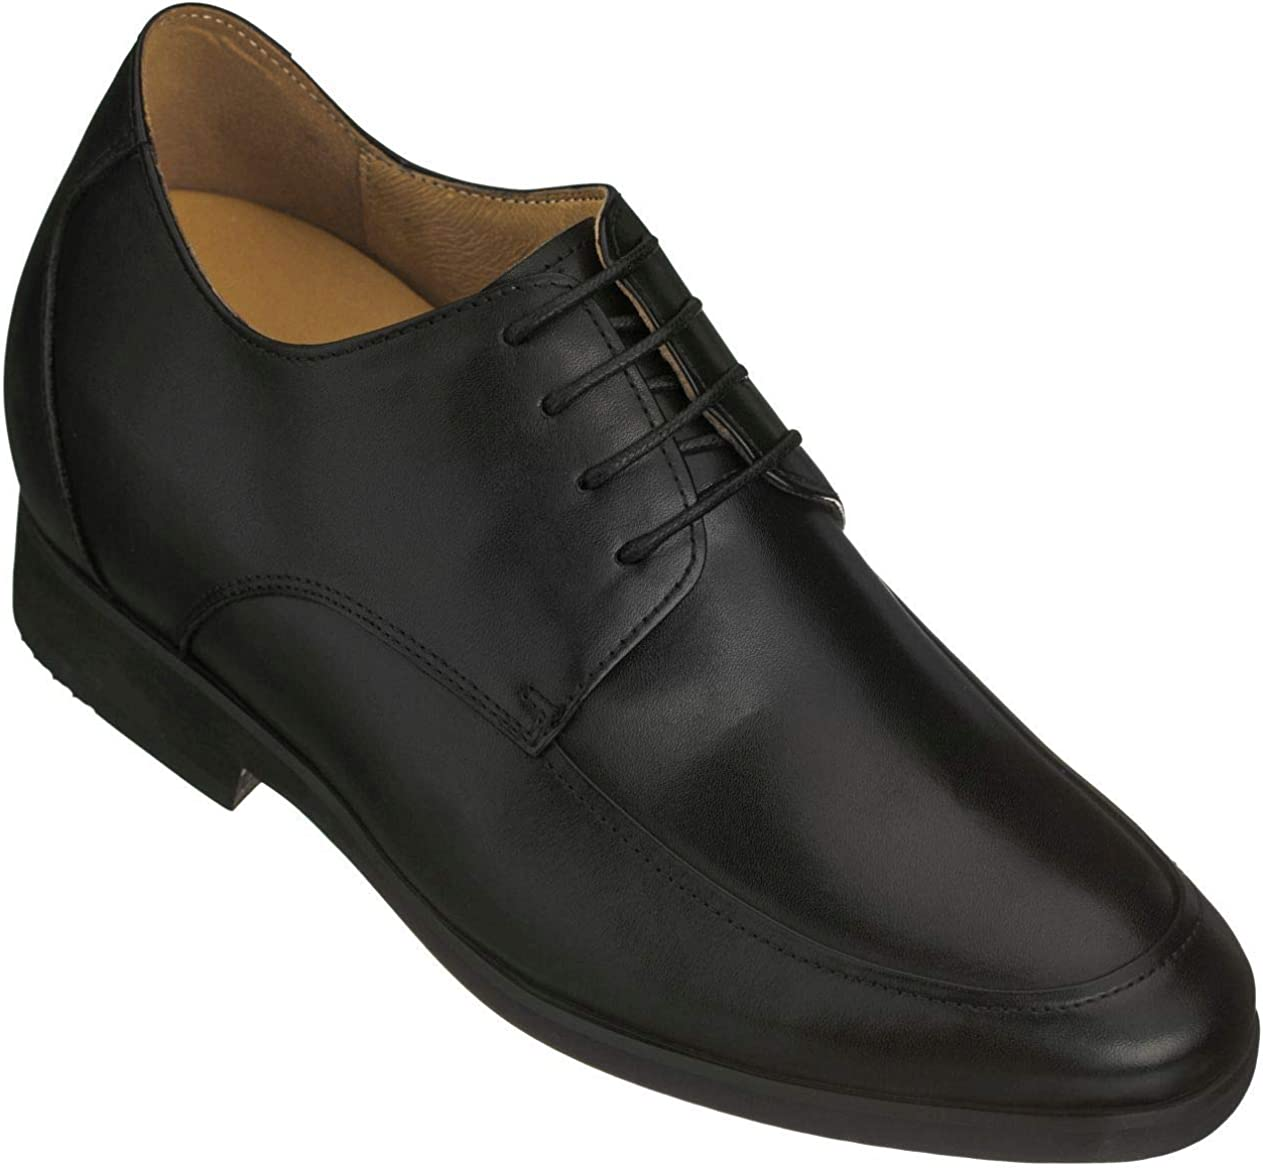 TOTO Men's Invisible Height Increasing Elevator Shoes - Premium Leather Lace-up Formal Oxfords - 3.4 Inches Taller